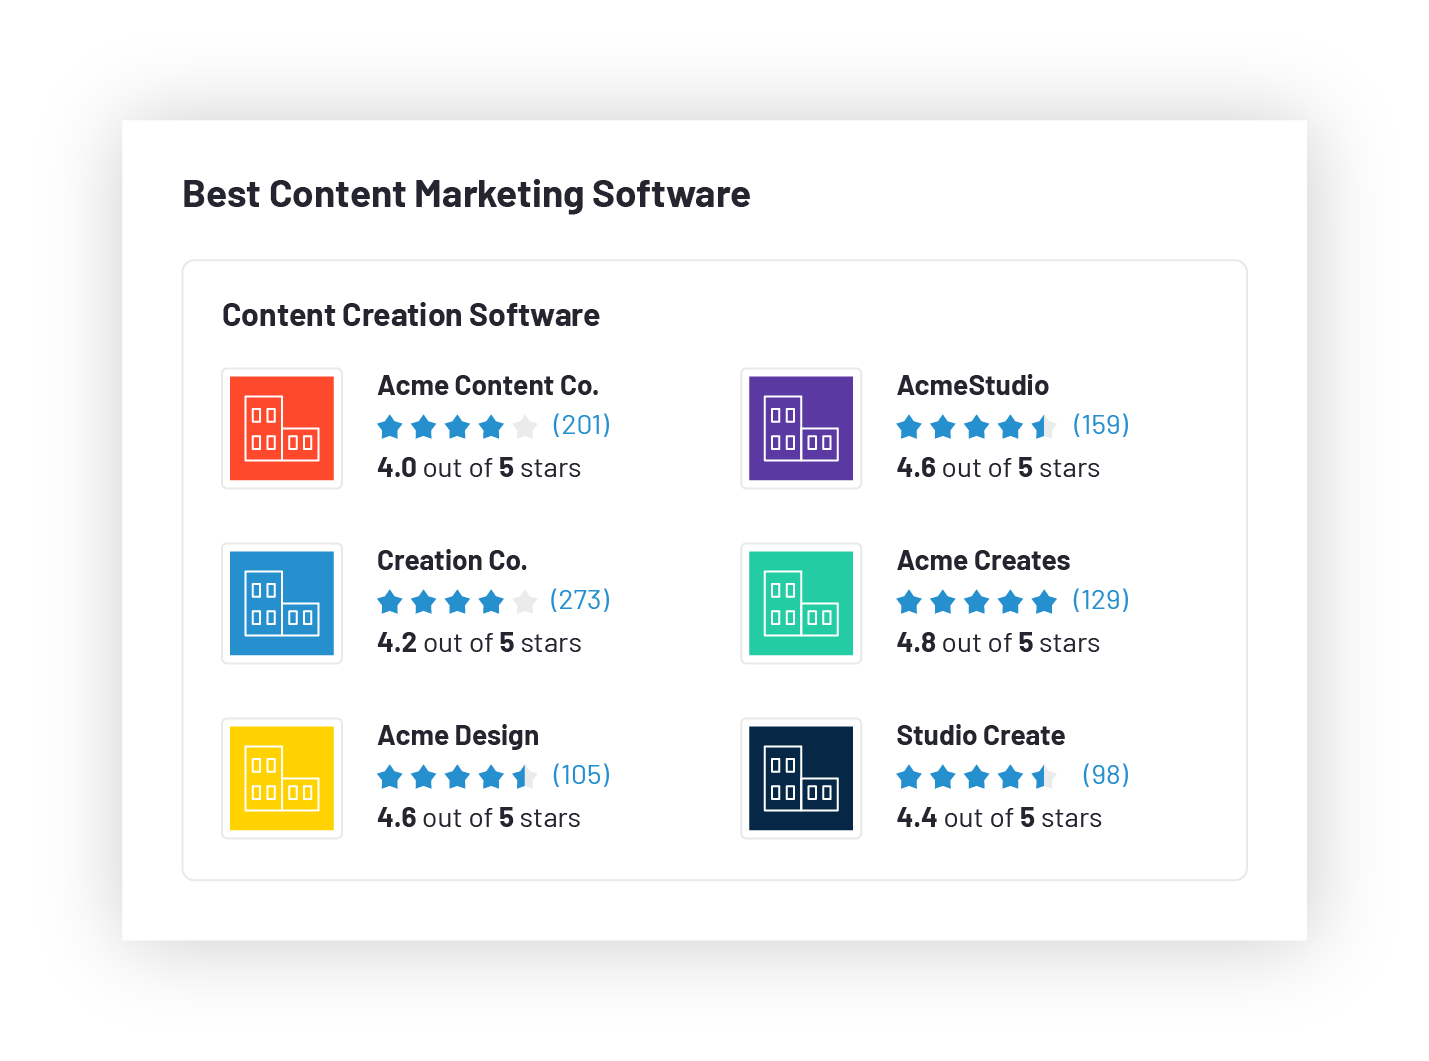 categories-screenshot-best-content-marketing-software@2x